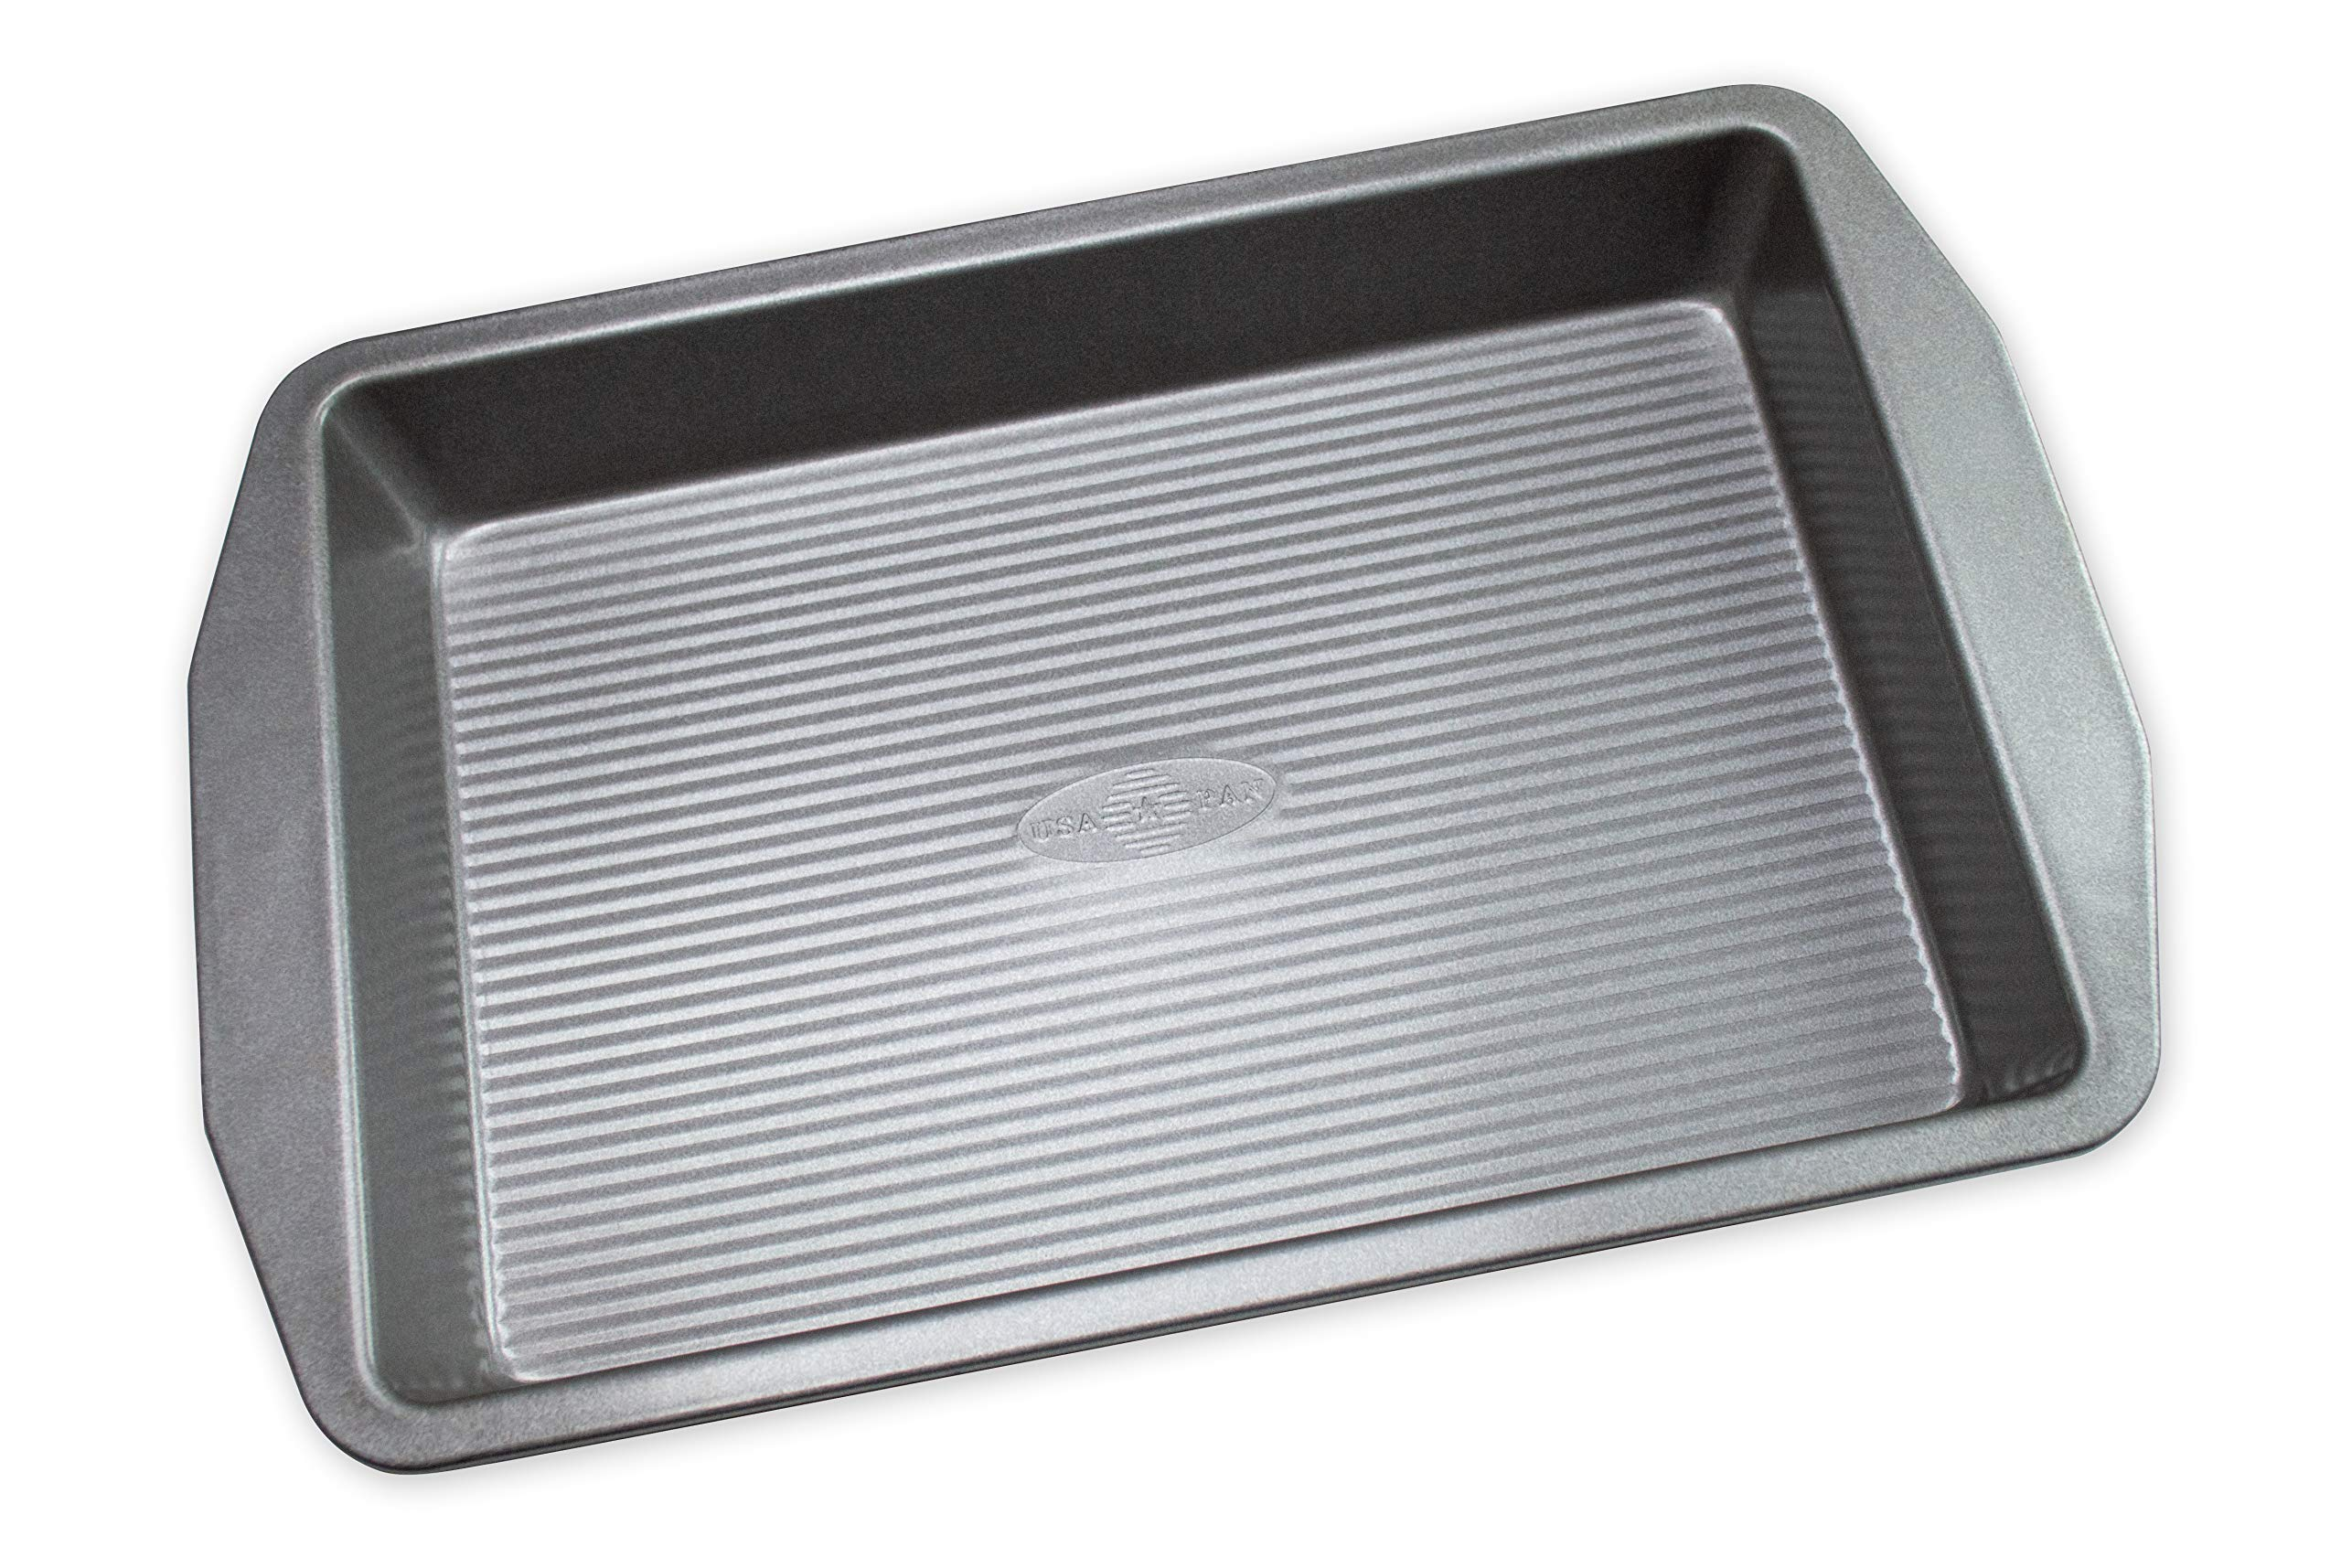 USA Pan 1110RC-3-ABC American Bakeware Classics 9 x 13-Inch Rectangular Lasagna, Cake and Brownie Pan, Aluminized Steel, 9 x 13 Inch by USA Pan